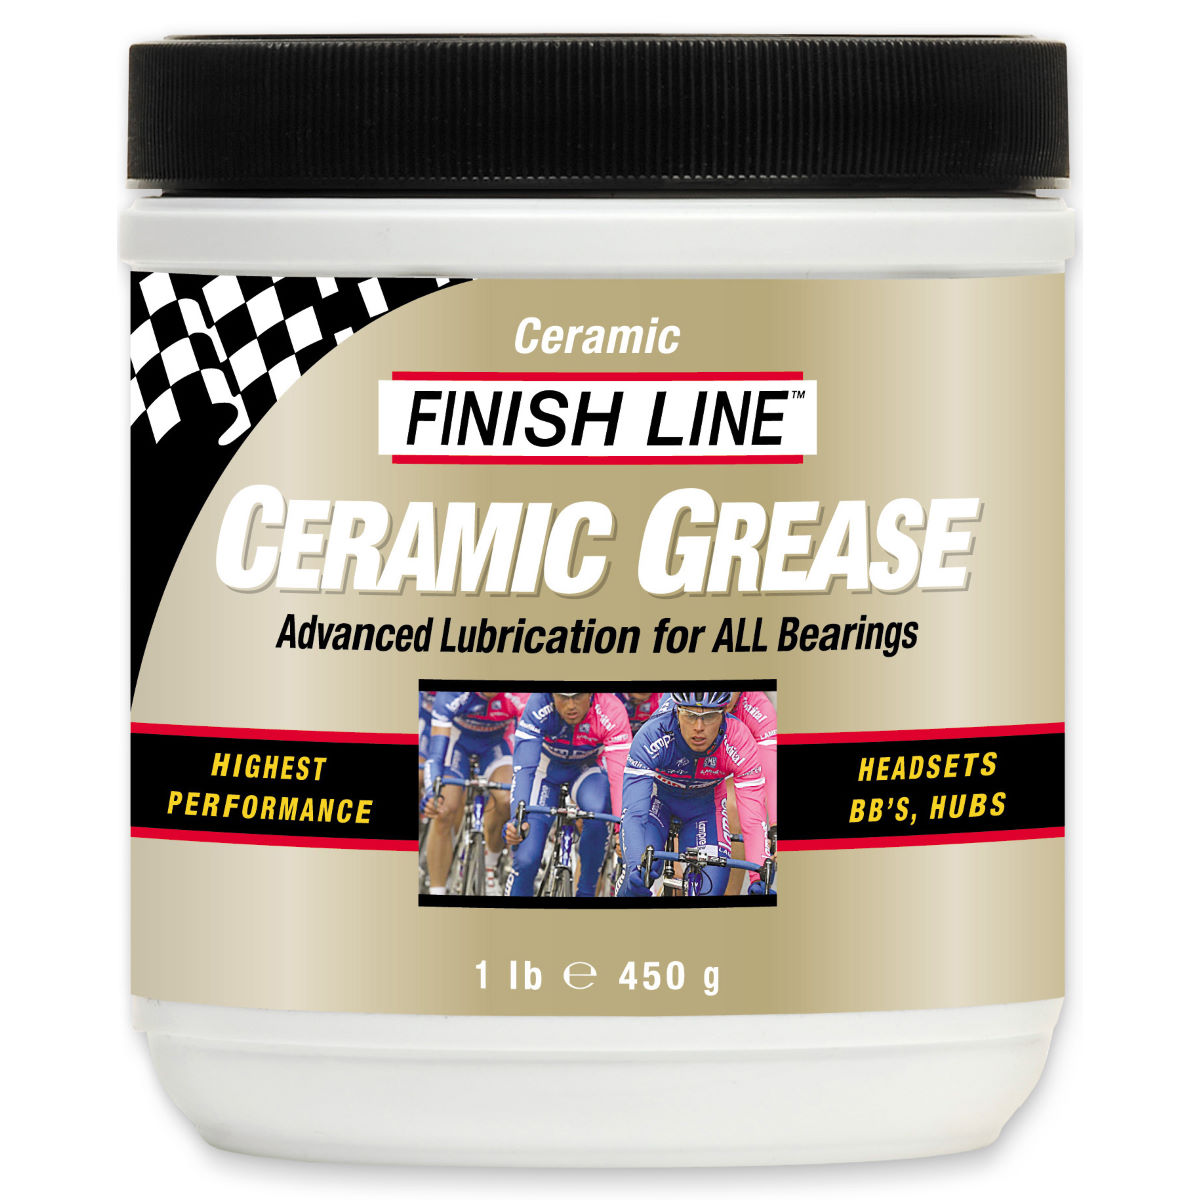 Tube de graisse céramique Finish Line 60 g - 455g Graisse